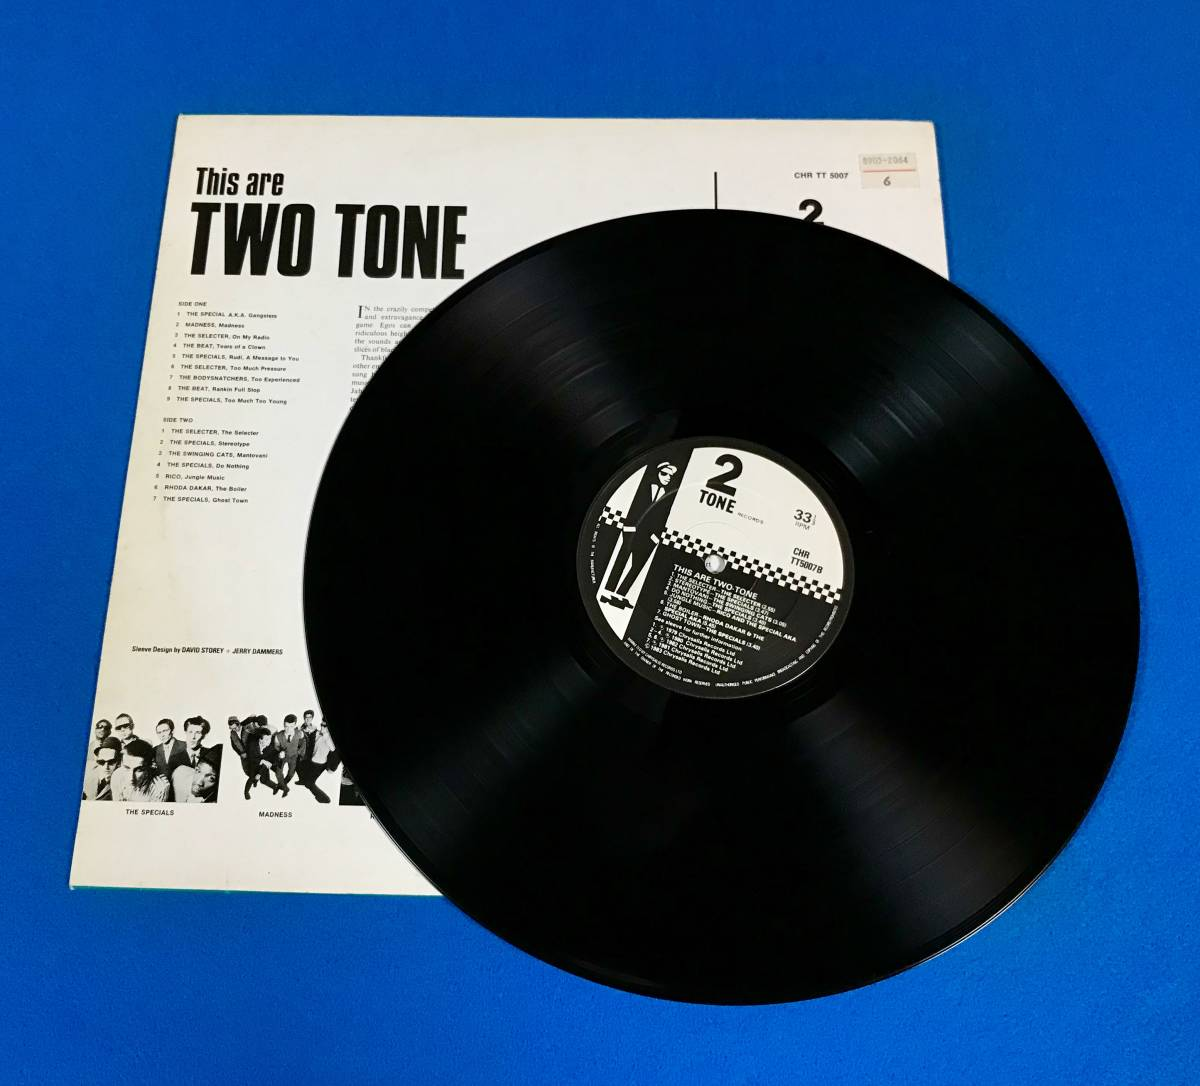 【SKA】【REGGAE】V.A.//THIS ARE TWO TONE//THE SPECIALS//MADNESS//THE SELECTER//RICO//CHRTT5007//VINYL LP/UK_画像5